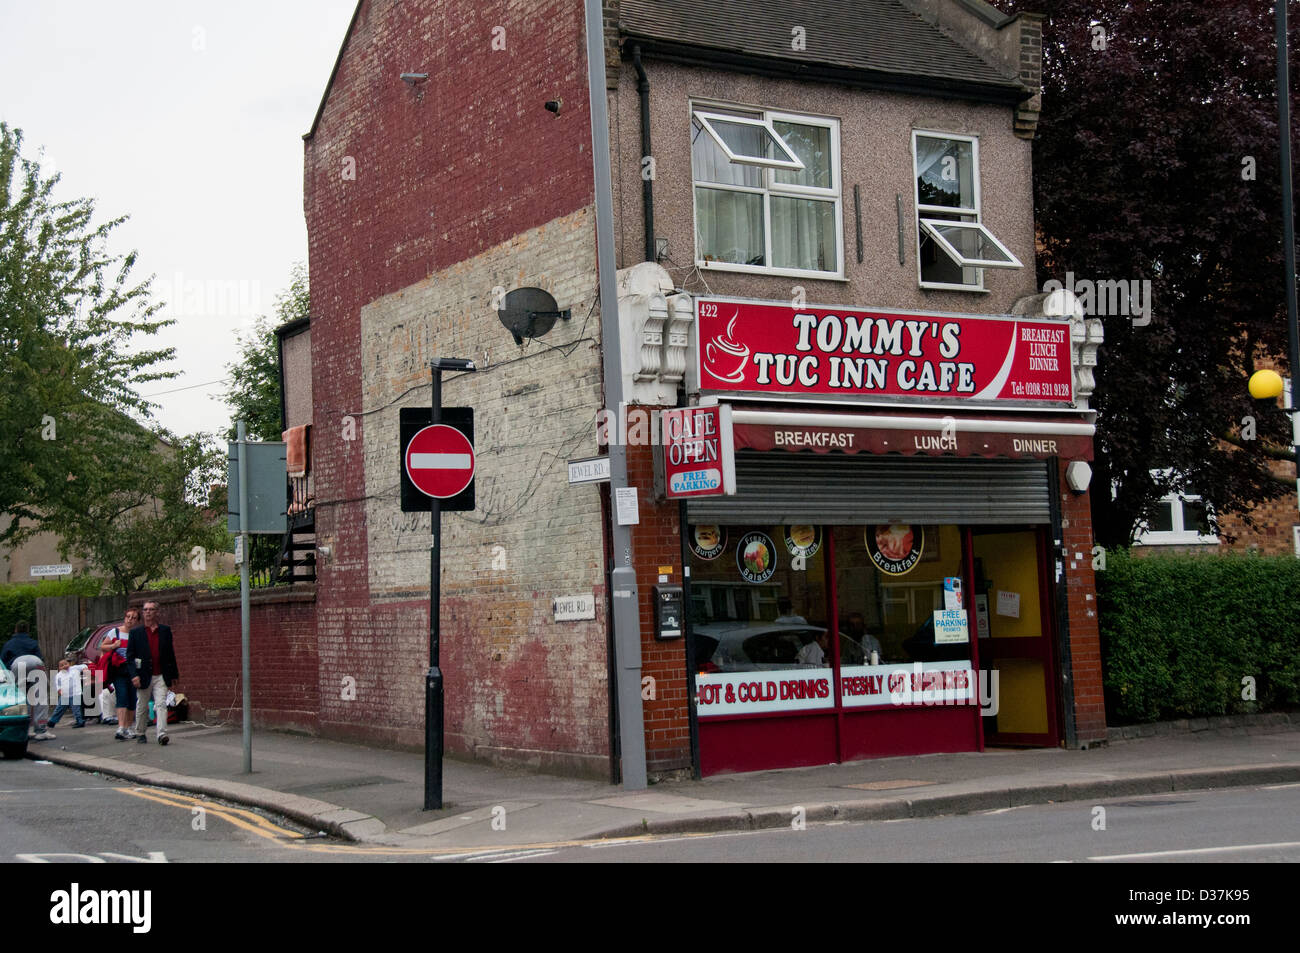 Old fashioned corner cafe in North London - Stock Image